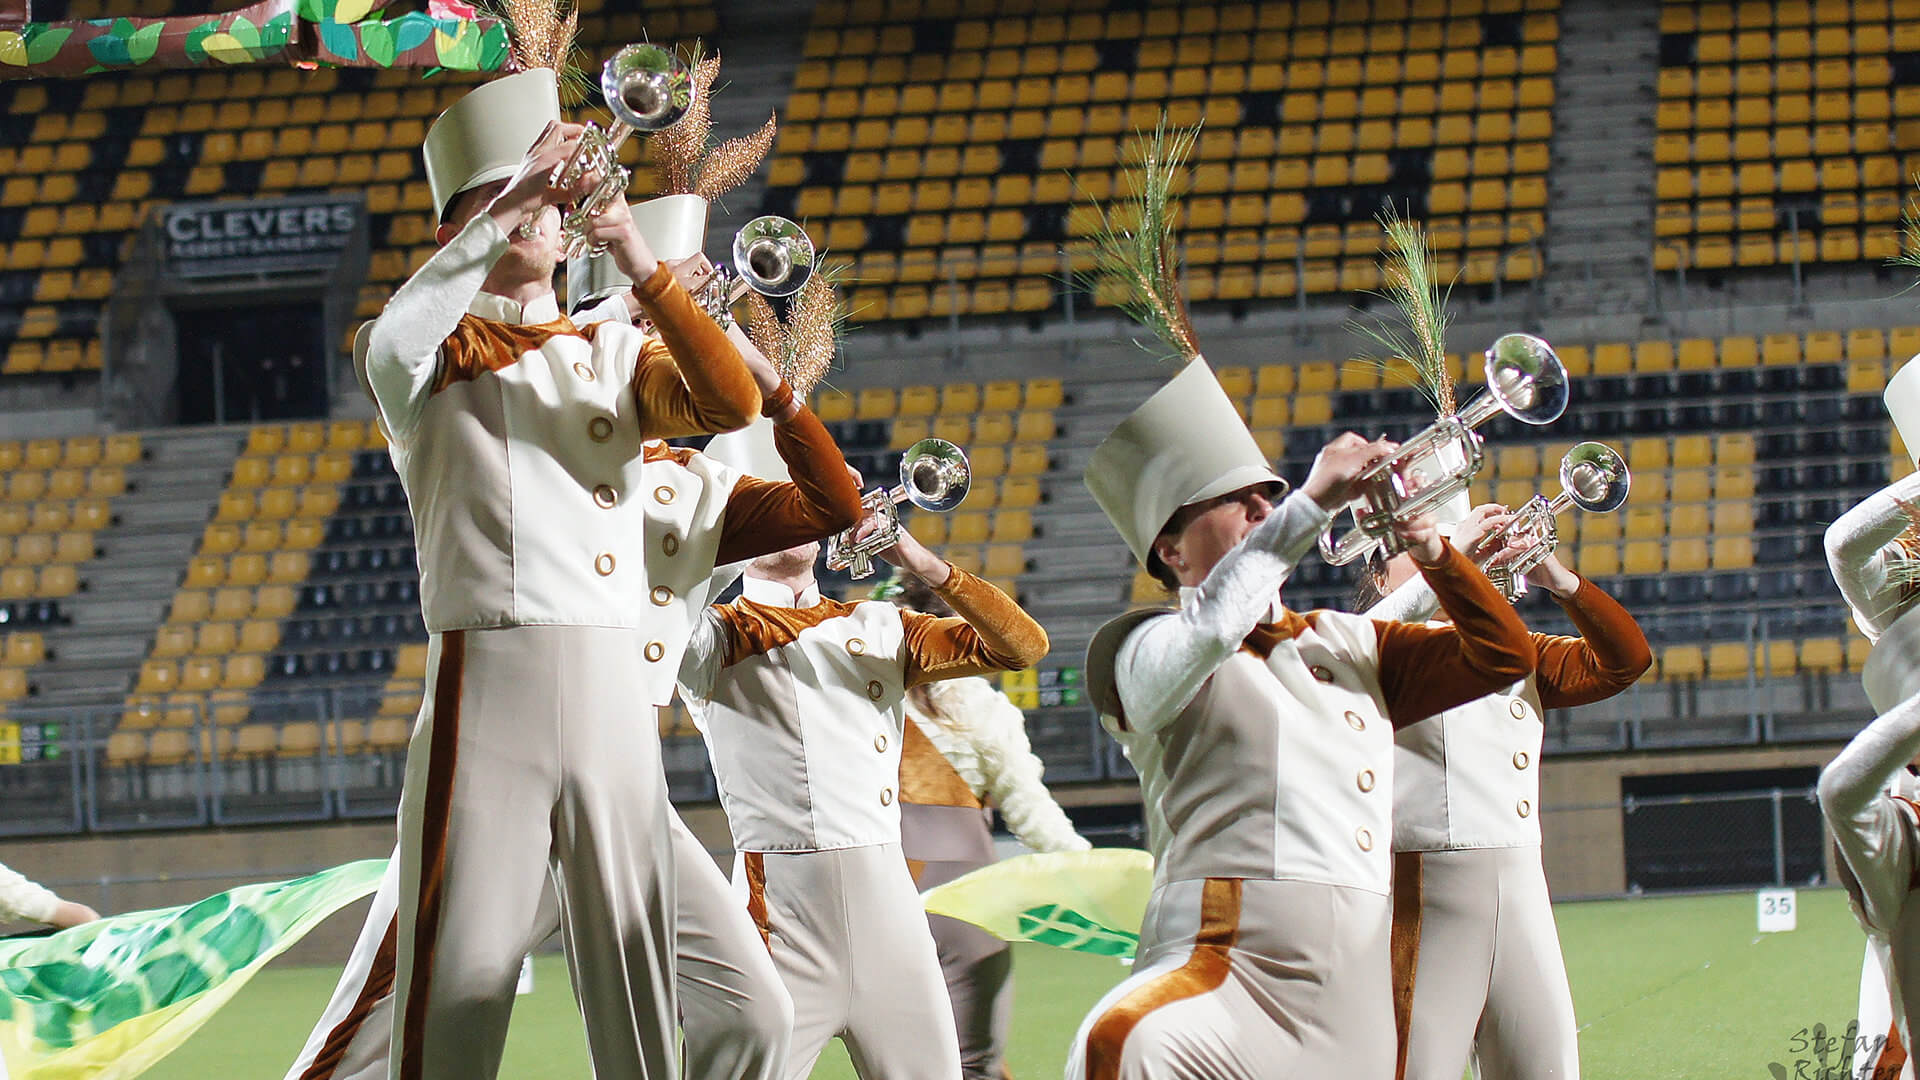 British drum corps has sights set on 2017 DCI World Championships